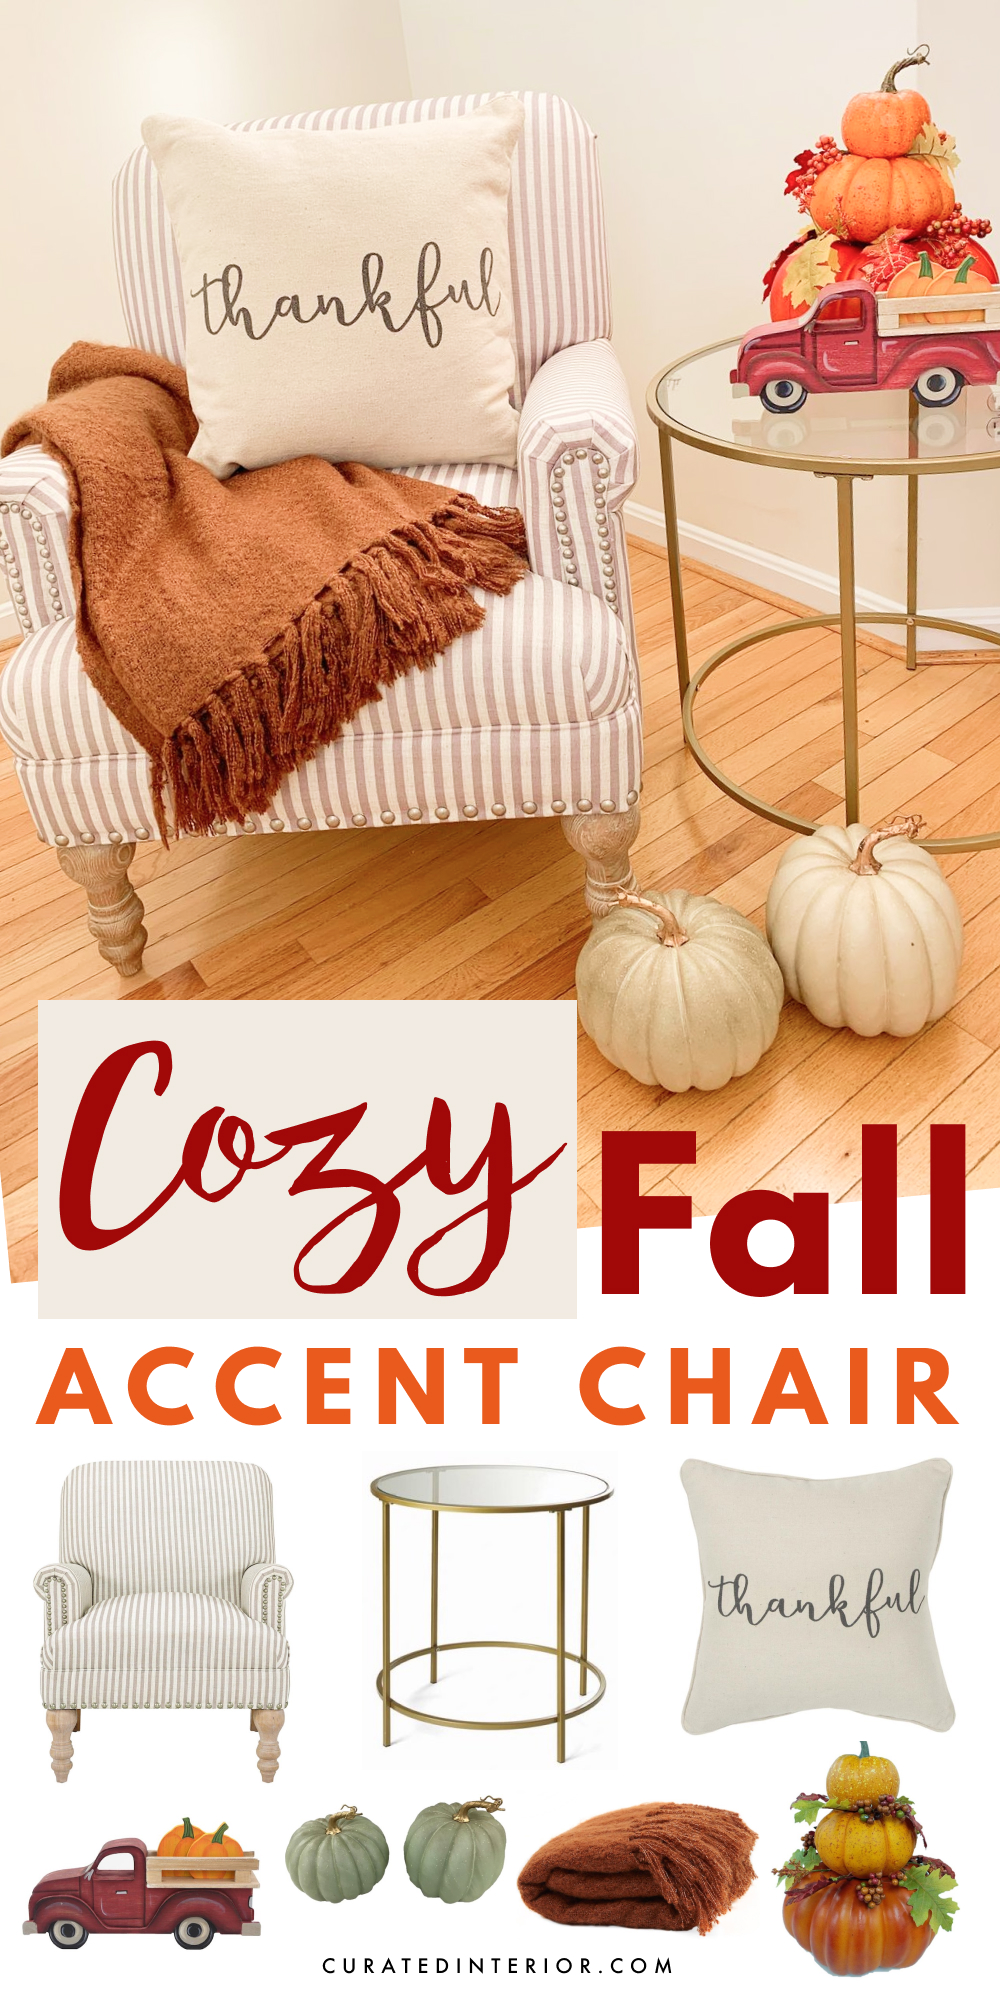 Cozy Fall Accent Chair Decor from Walmart